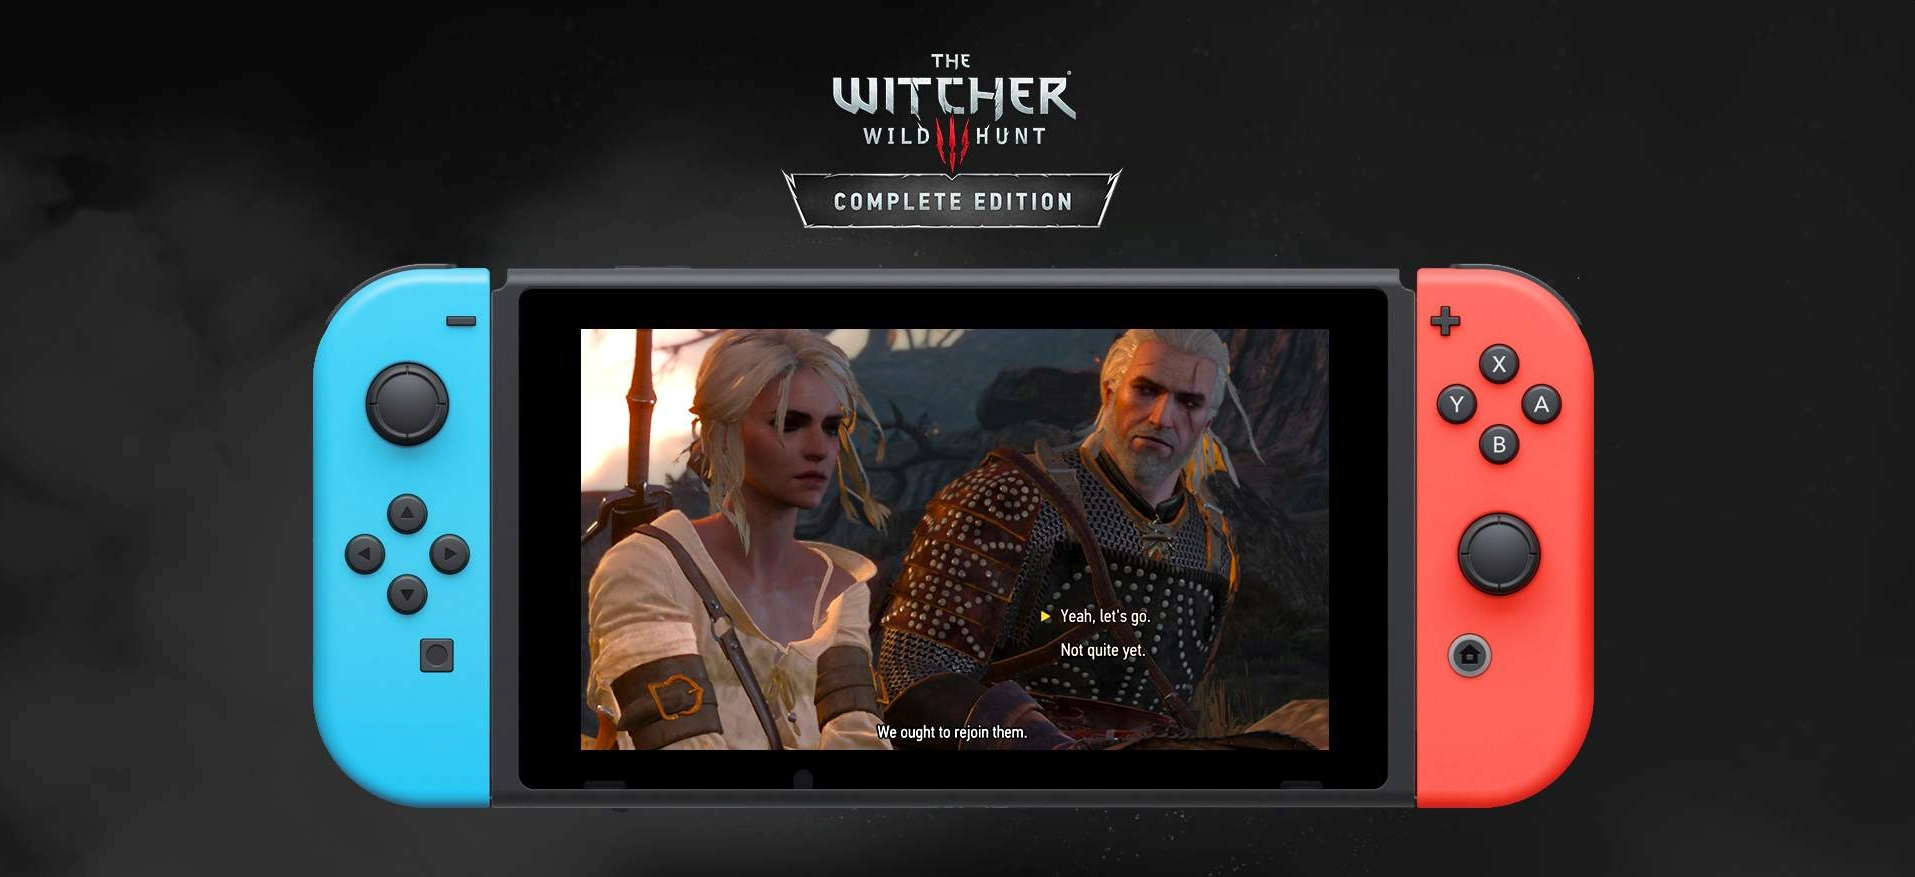 The Witcher 3: Wild Hunt's Nintendo Switch Update Lets Players Integrate PC Saves